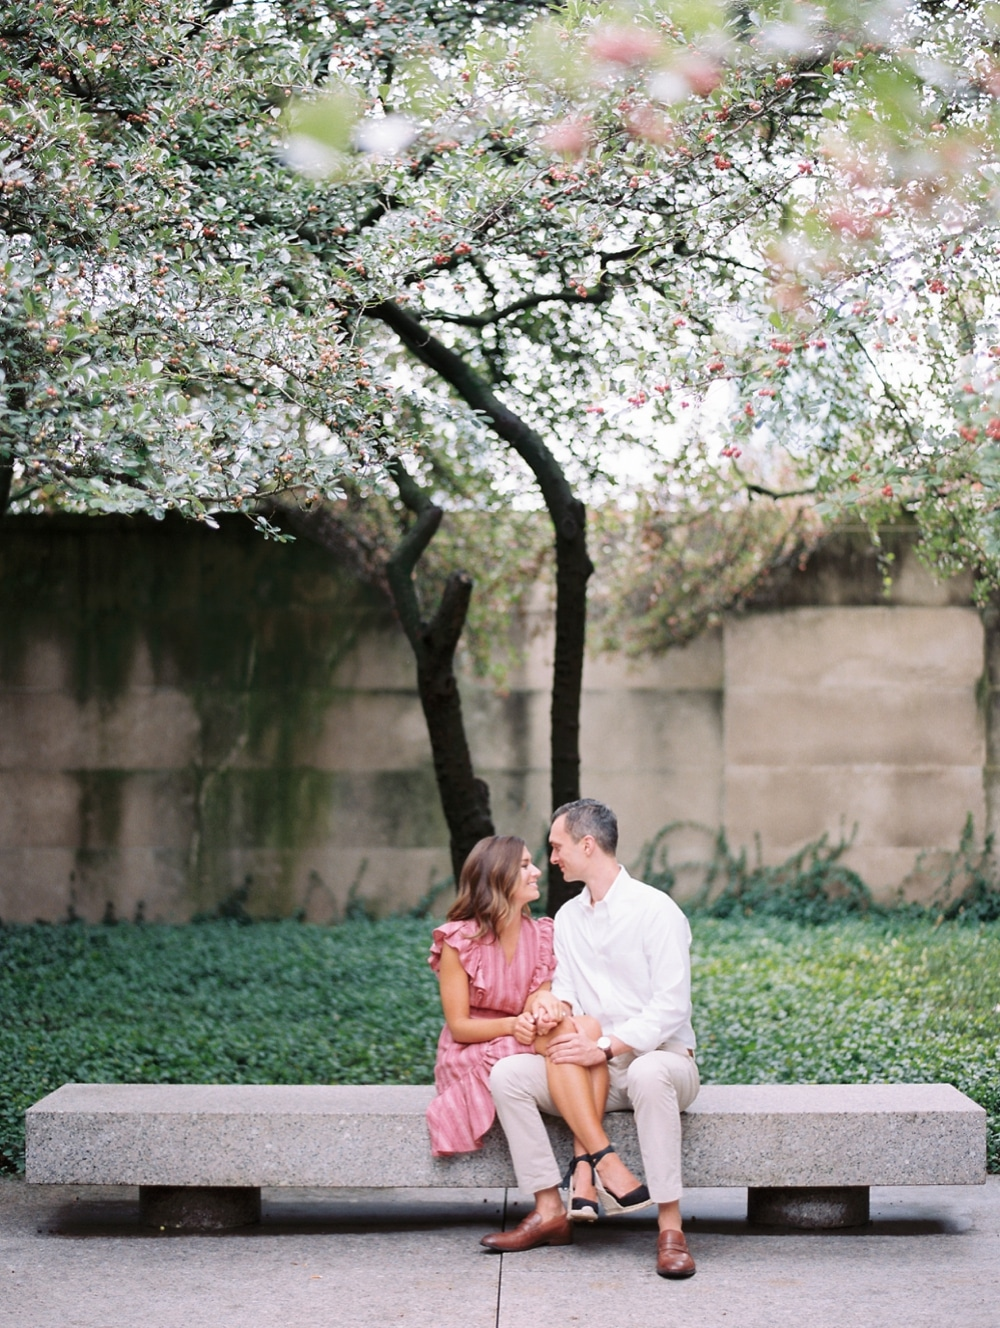 Kristin-La-Voie-Photography-chicago-art-institute-engagement-wedding-photos-31